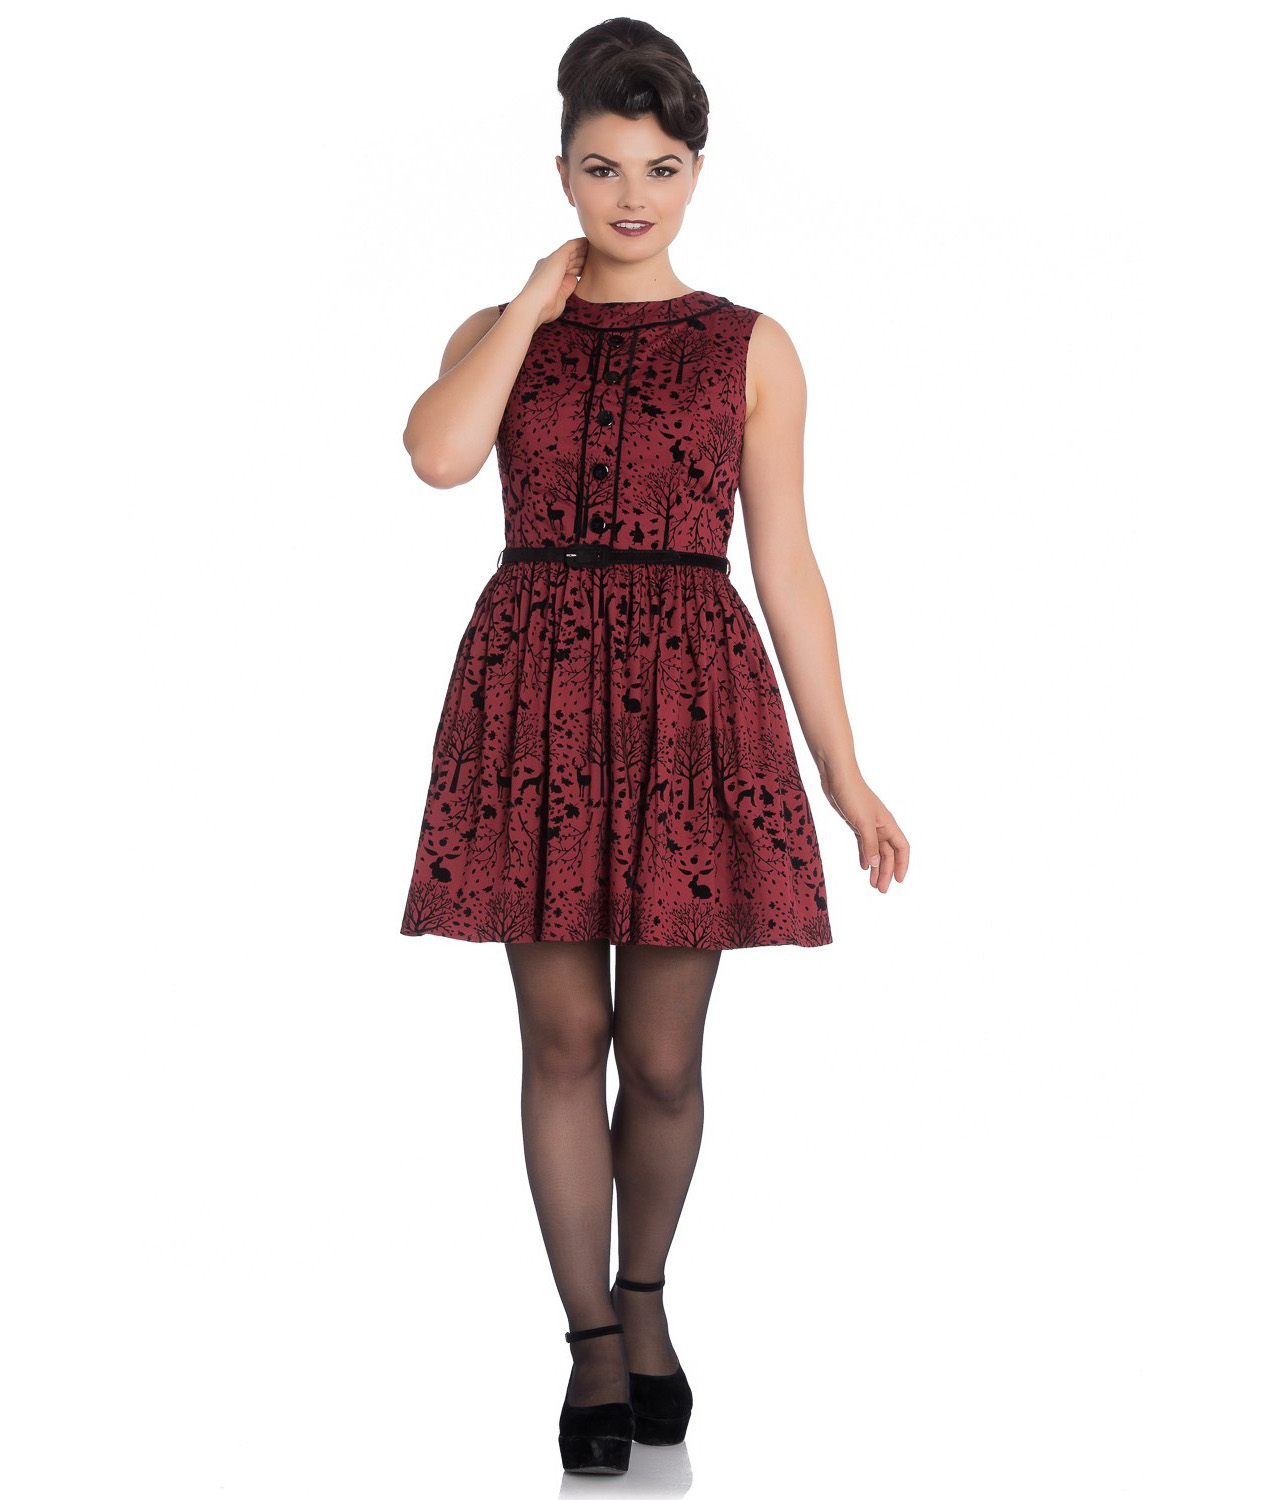 Hell-Bunny-50s-Mini-Skater-Dress-Woodland-Trees-SHERWOOD-Black-Red-All-Sizes thumbnail 3